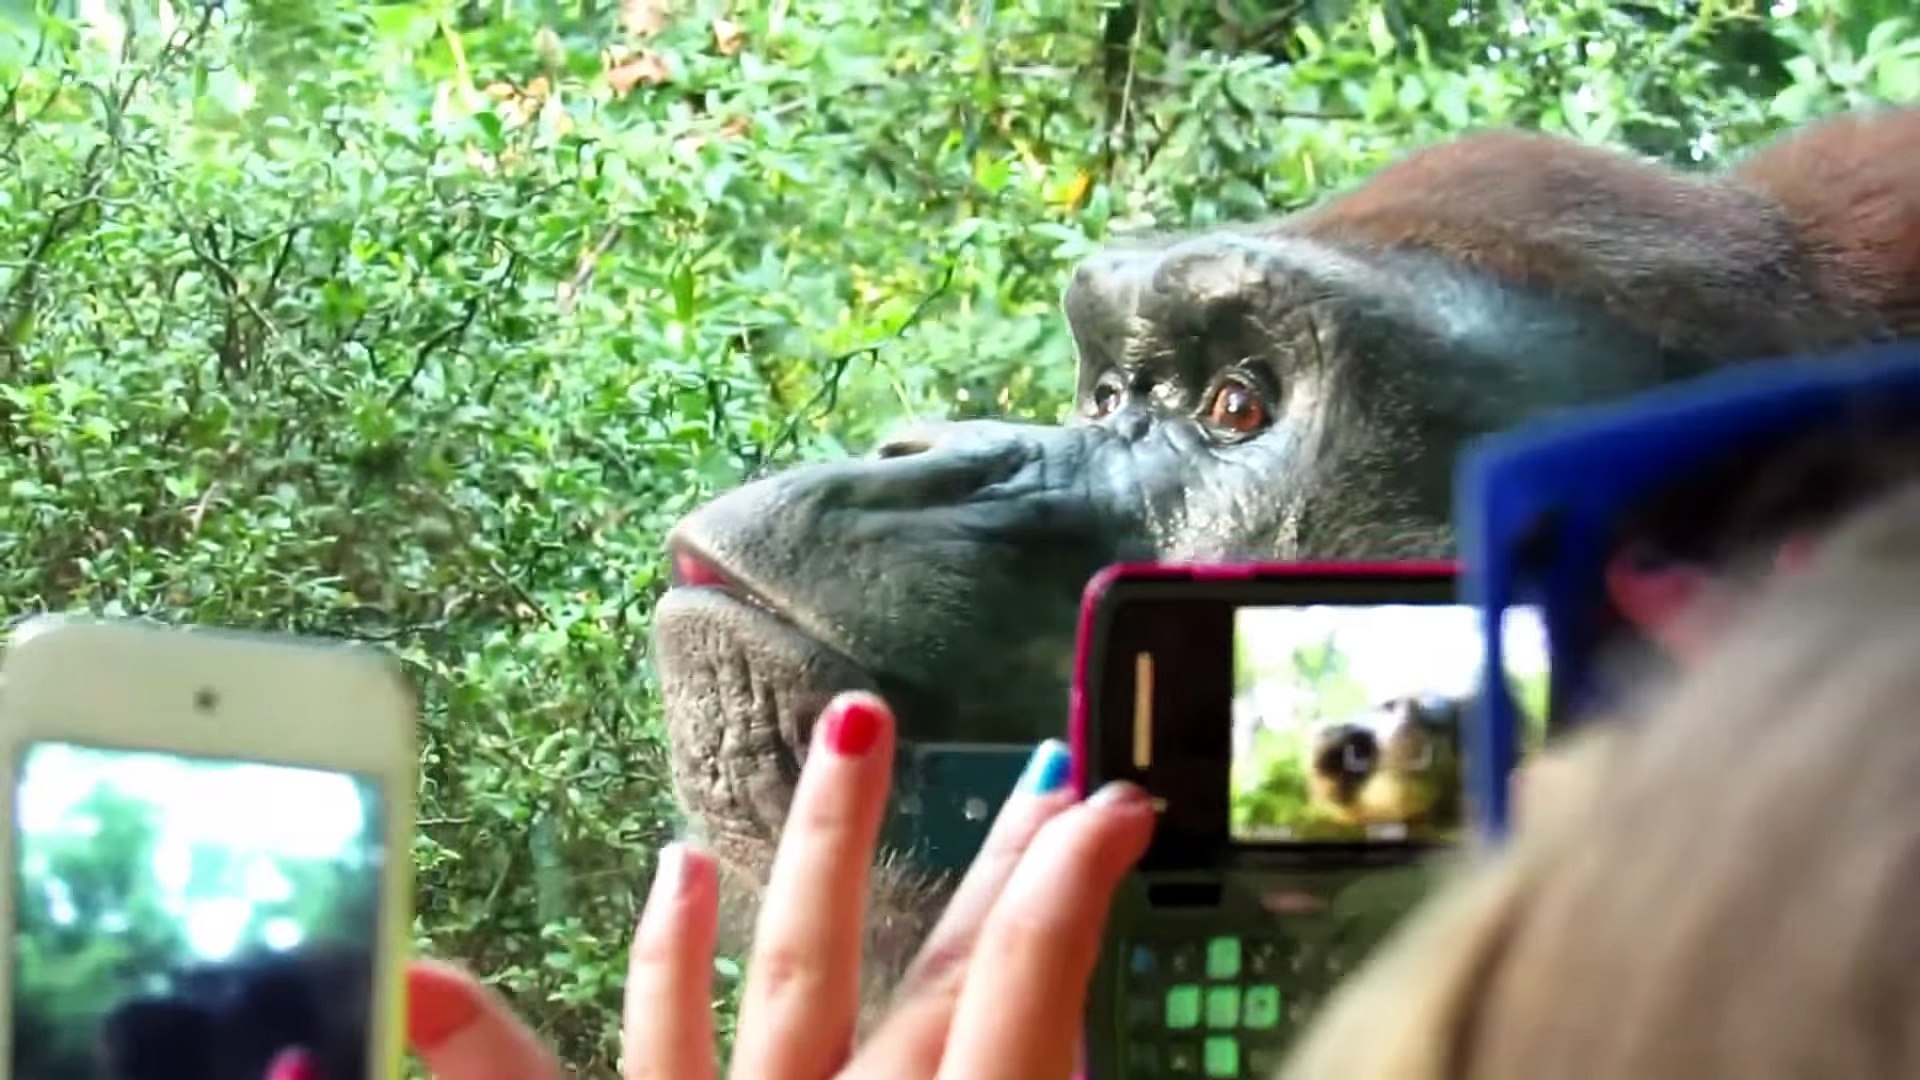 Kids and wild animals At The Zoo- Rainforest Animals and African animals